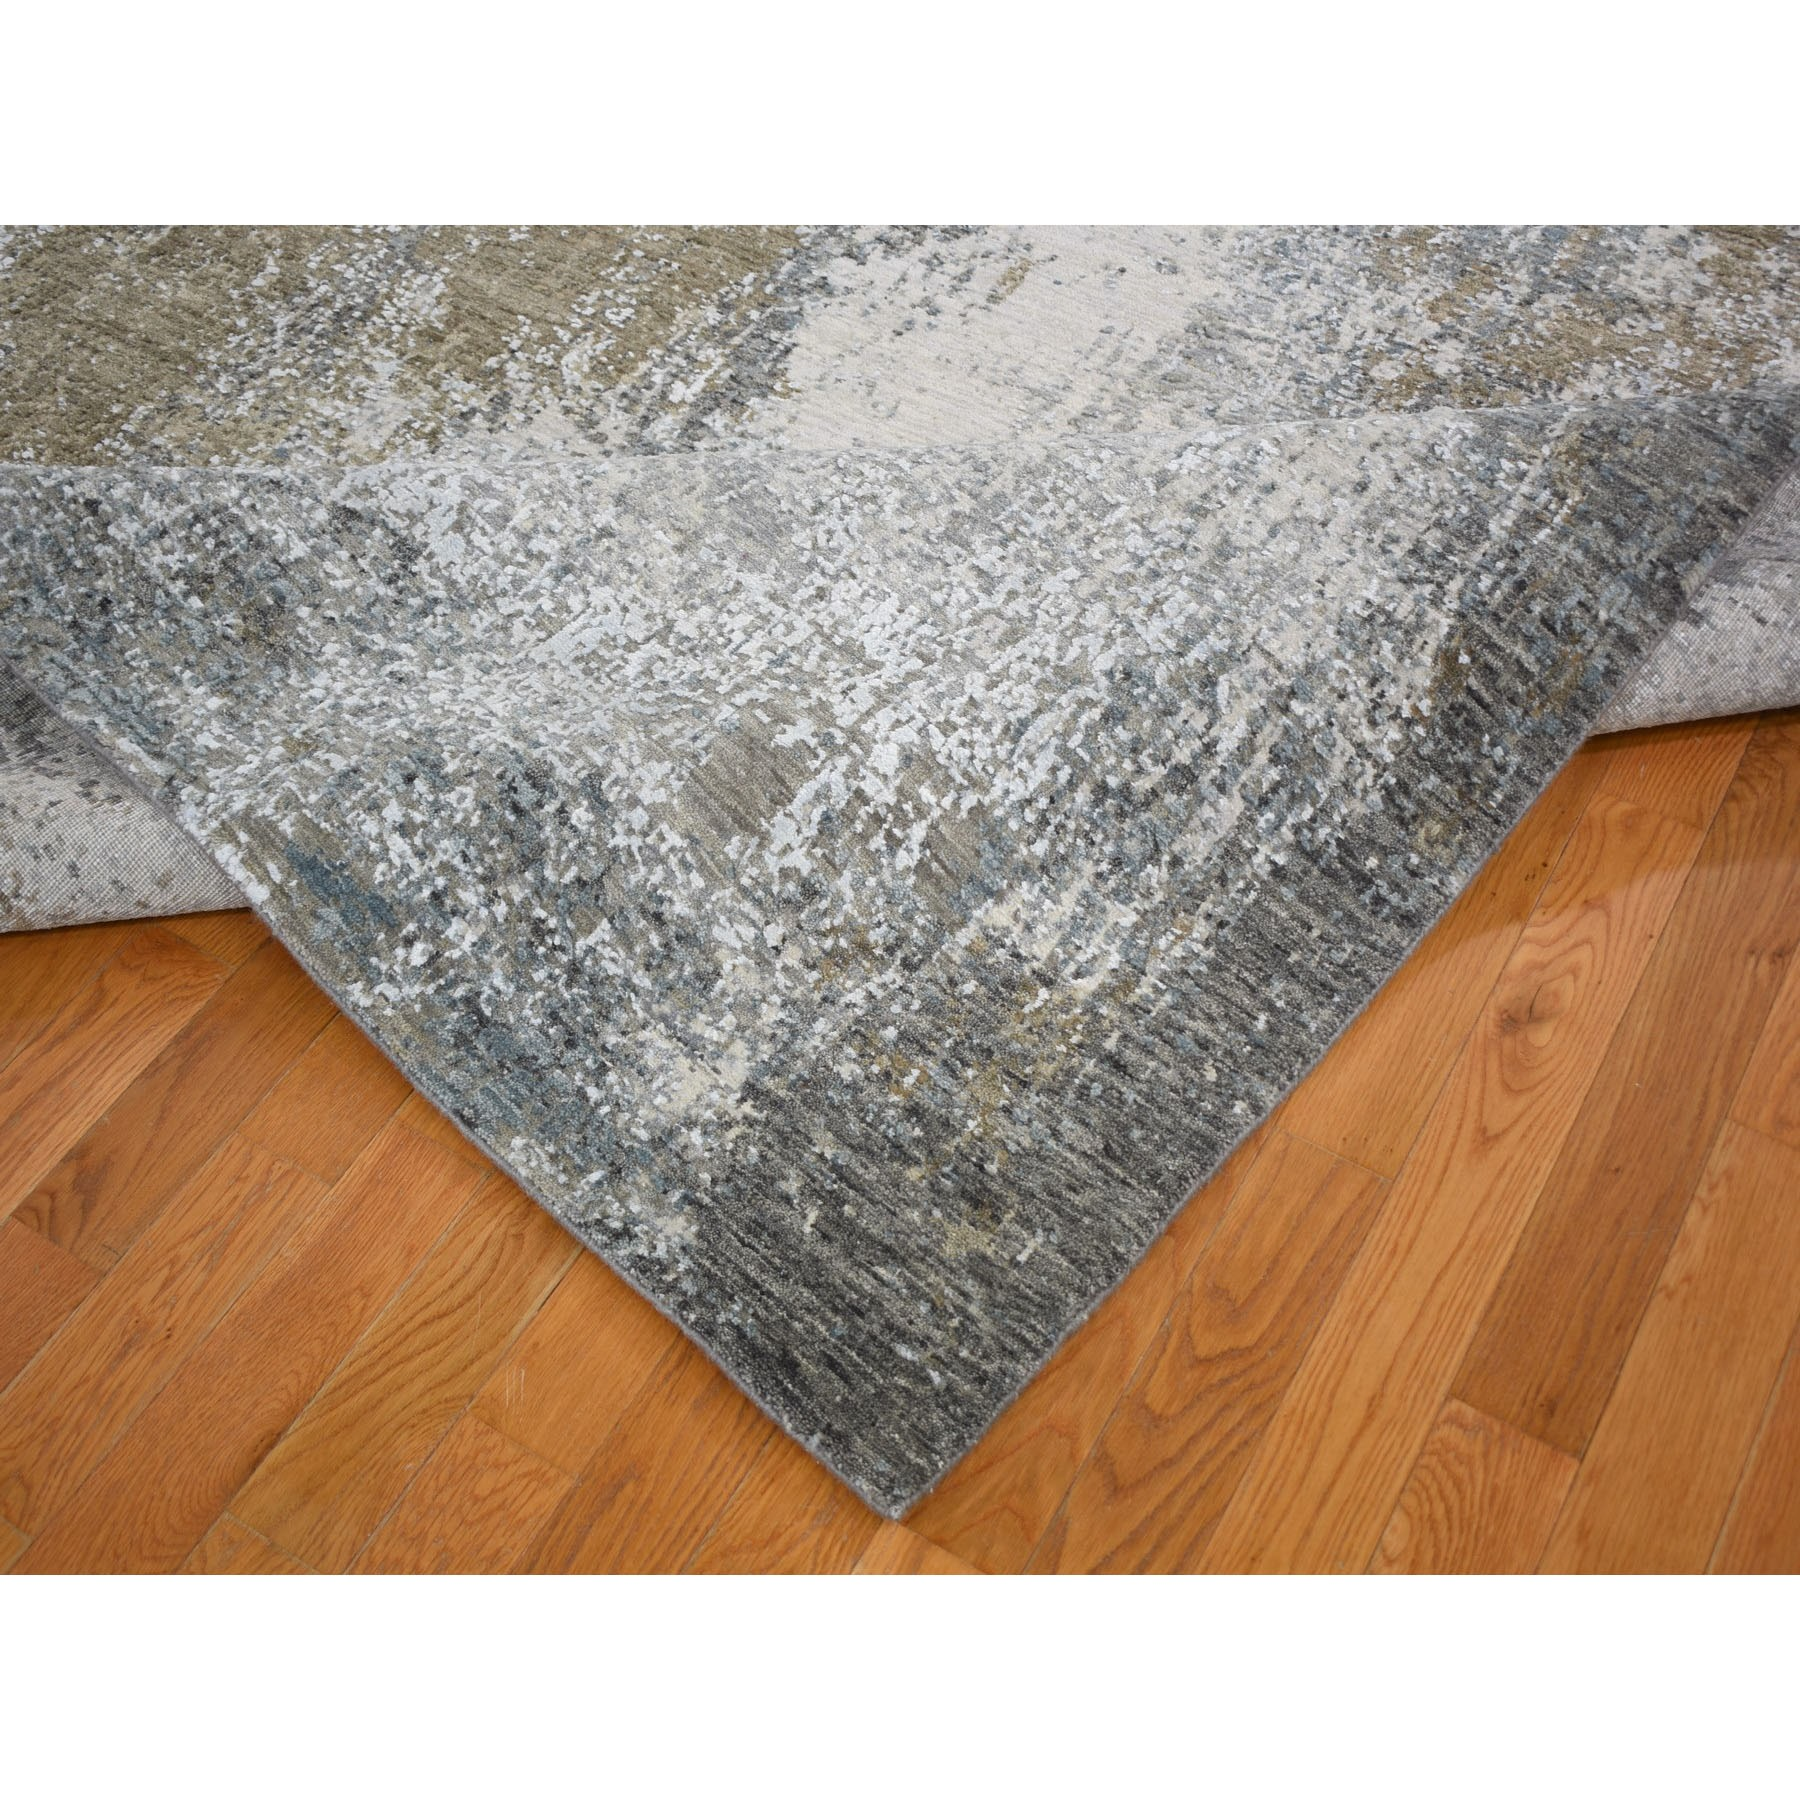 "7'10""x10'  Gray Abstract Design Wool And Silk Hi-Low Pile Denser Weave Hand Knotted Oriental Rug"